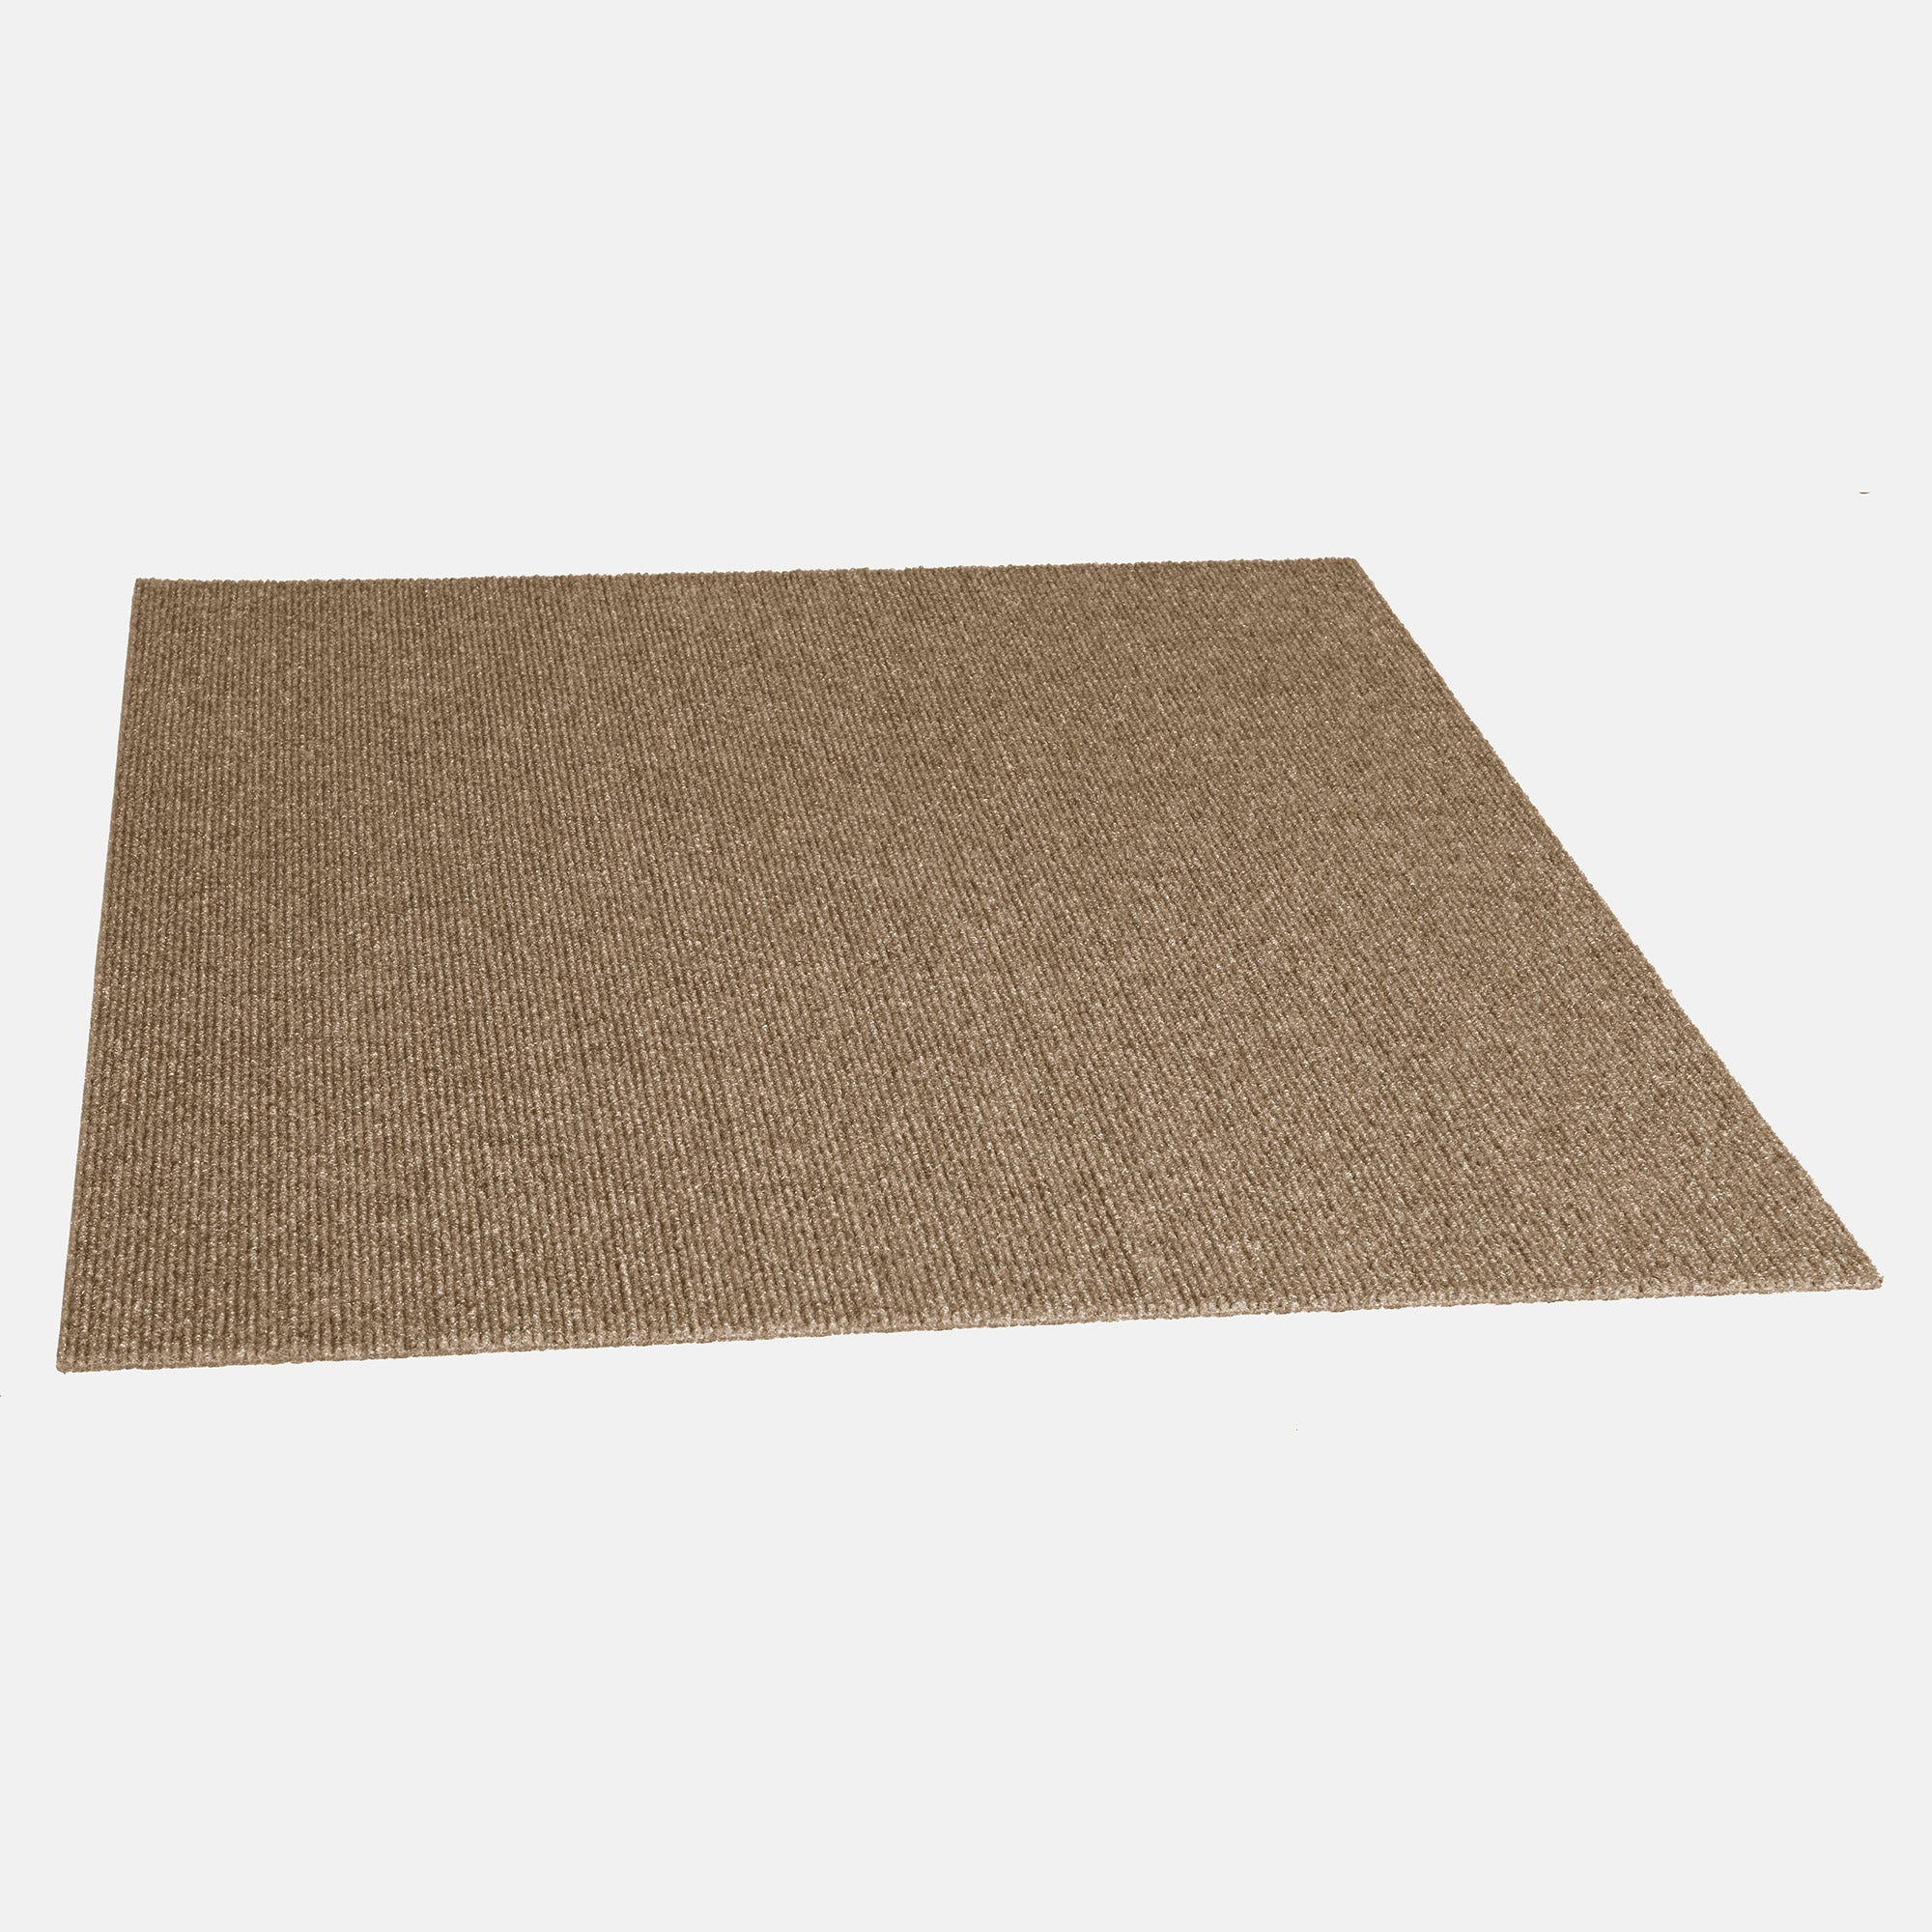 Pioneer 24'' X 24'' Premium Peel And Stick Carpet Tiles (Dove)